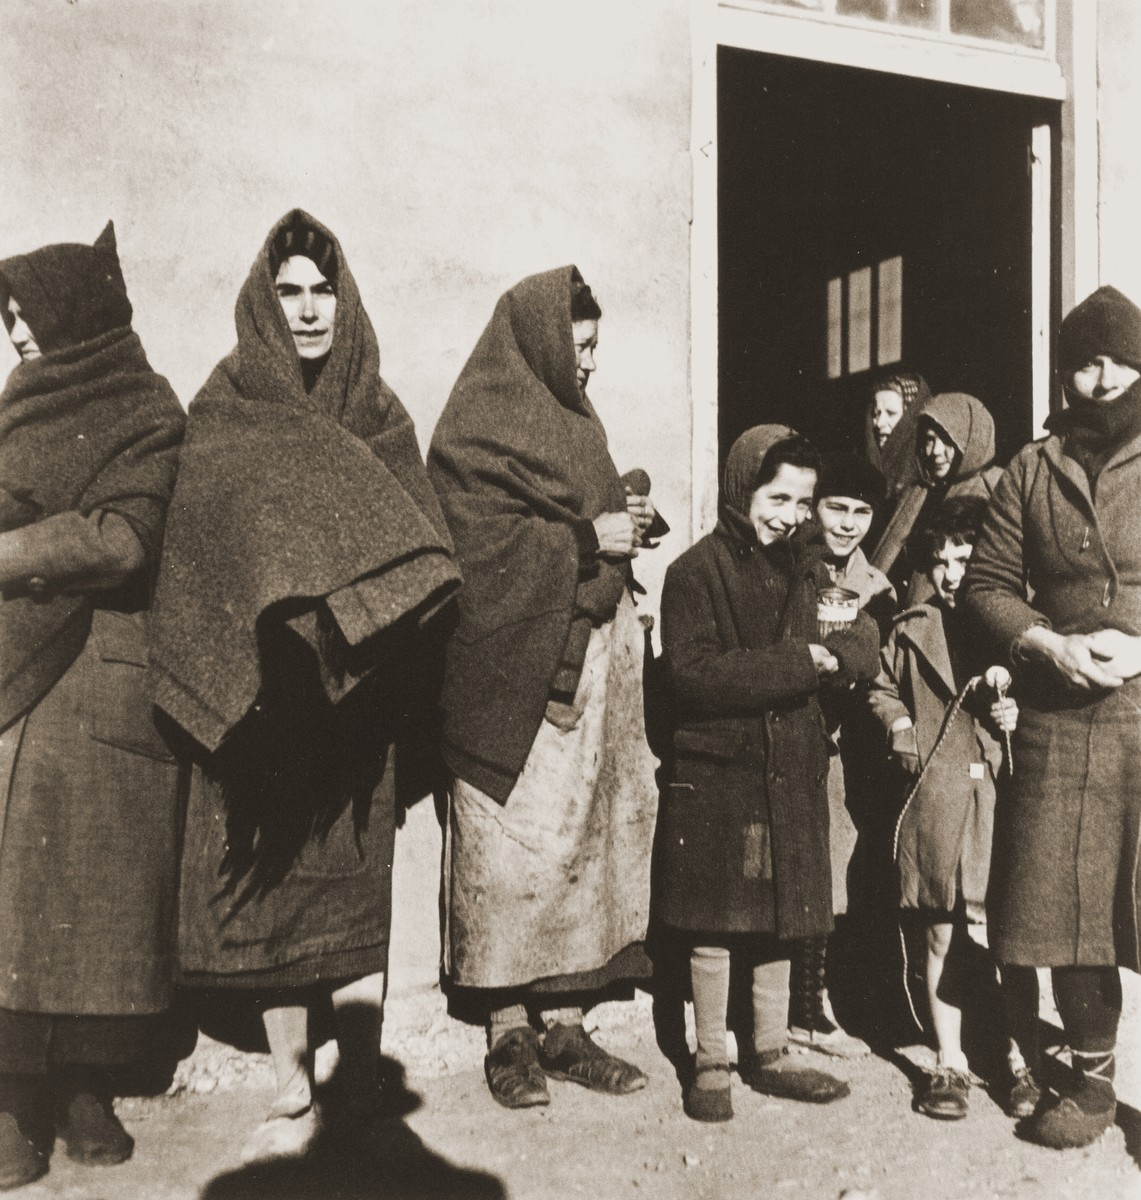 Women and children try to stay warm while waiting for food distribution.